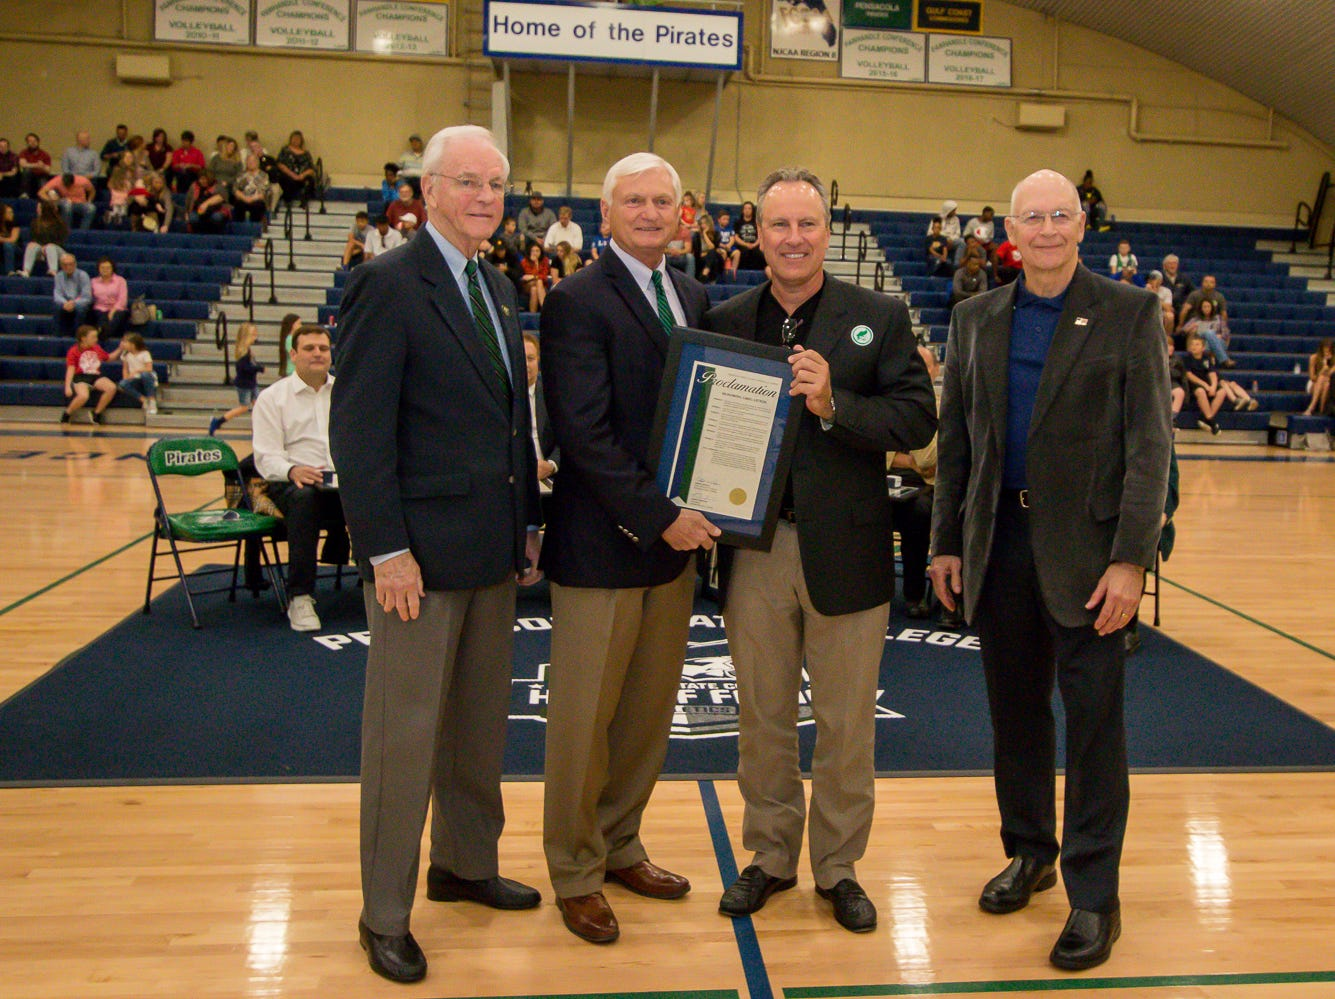 Greg Litton, second from right, is honored during Pensacola State College's inaugural Athletics Hall of Fame induction ceremony on Saturday, February 16, 2019, in the Hartsell Arena on the main campus. A Woodham High School graduate, Litton played on the PSC baseball team during the 1983-84 season and played for the San Francisco Giants, Seattle Mariners, and Boston Red Sox before retiring in 1994.